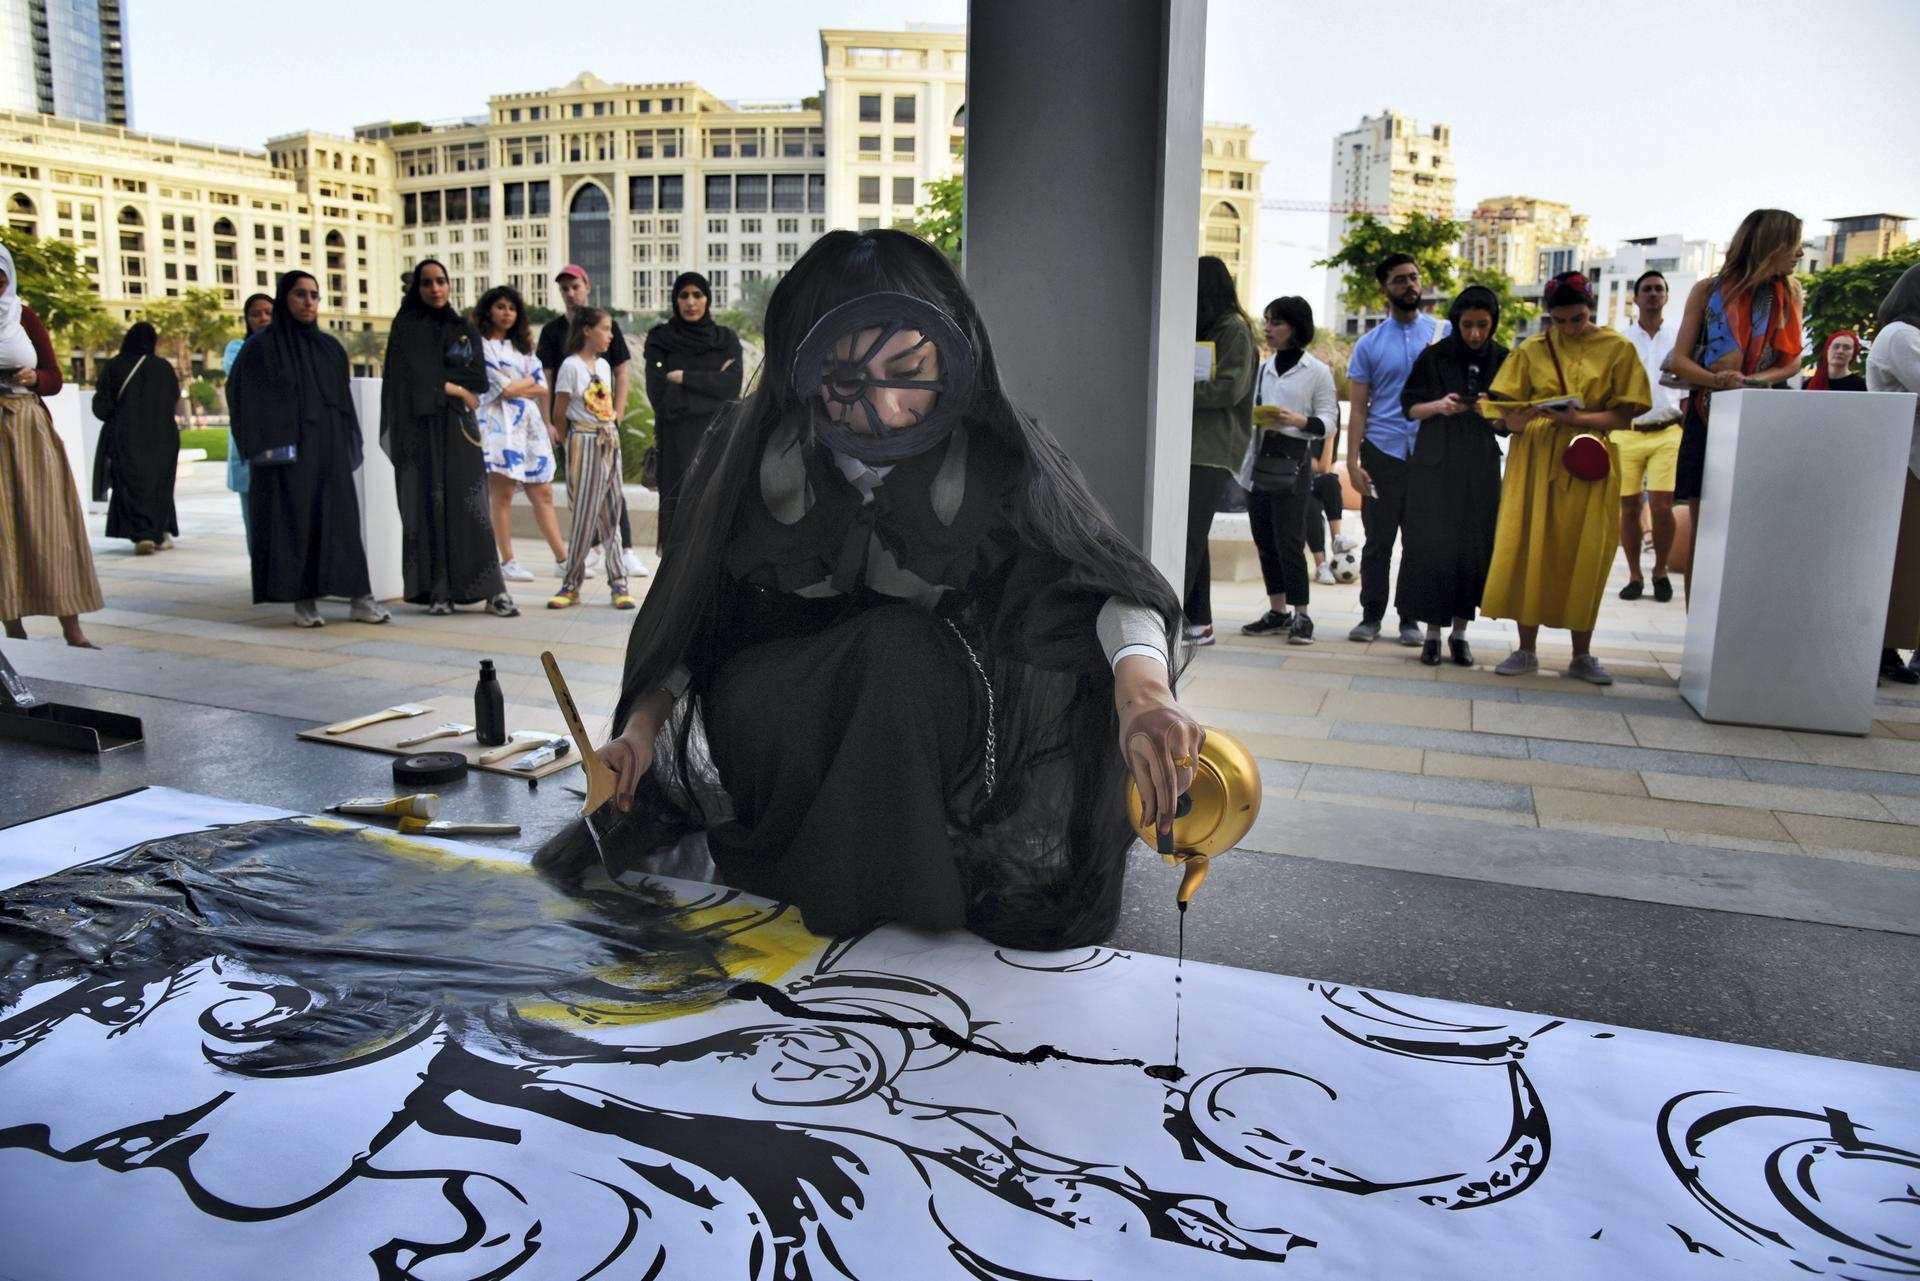 Shaikha Al Ketbi gave a one-off performance during the event. Photo credit Shruti Jan for The National.